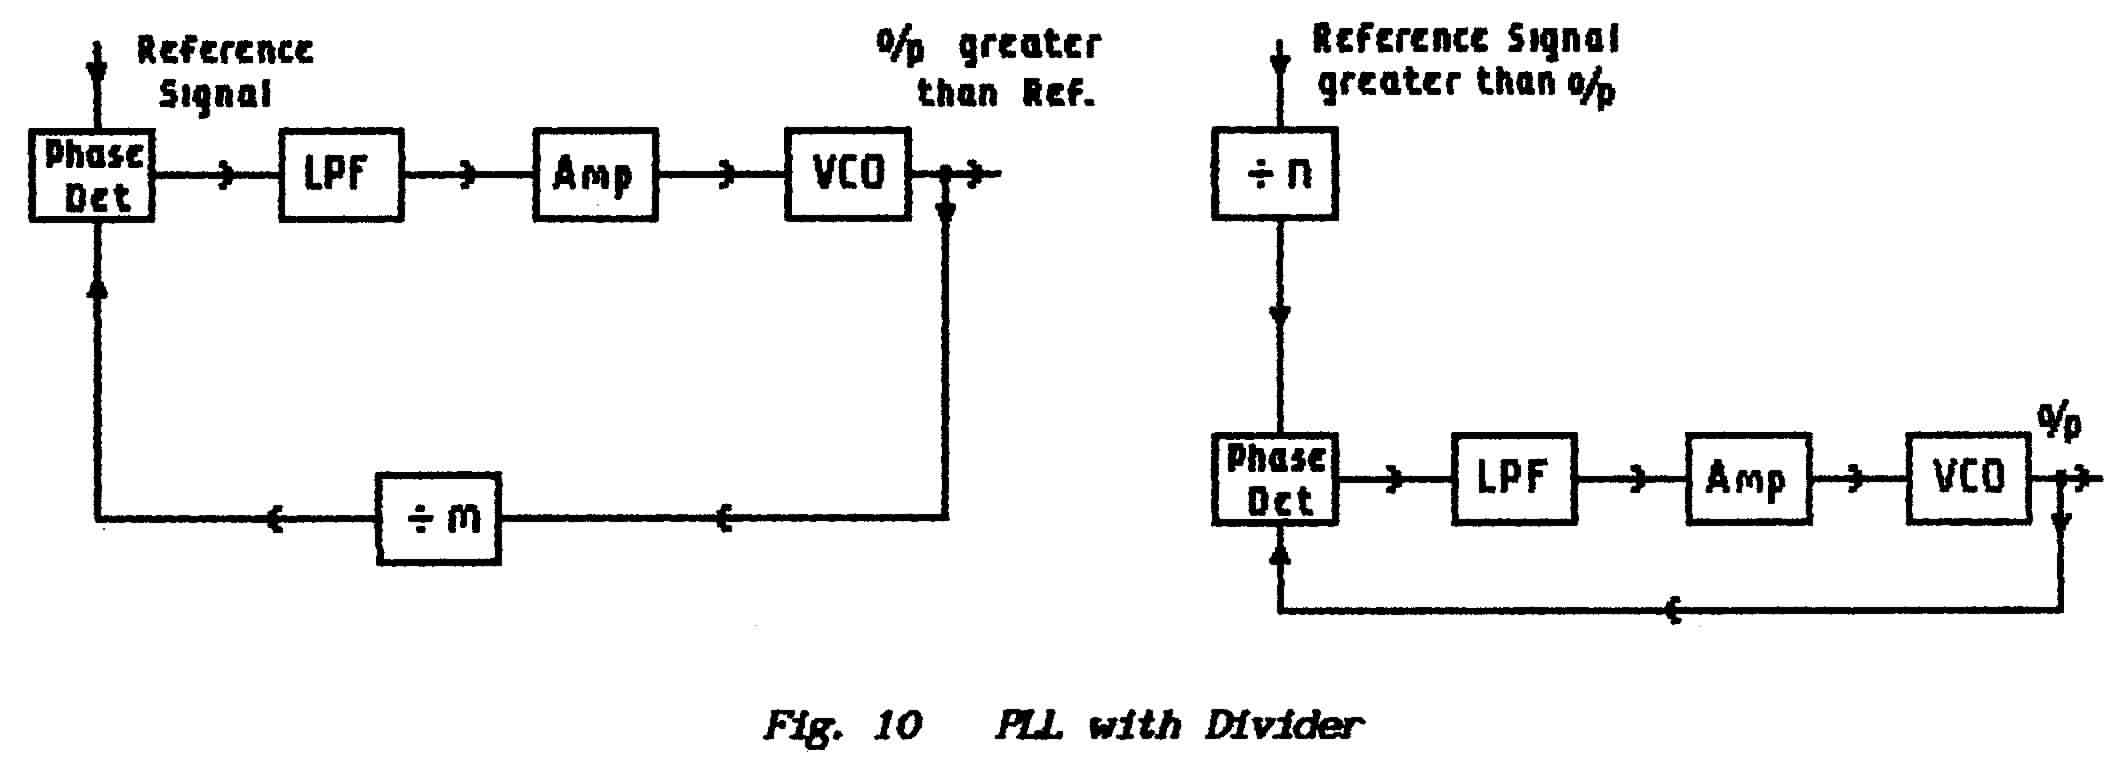 Frequency Counter Theory : Fundamentals basic radio theory